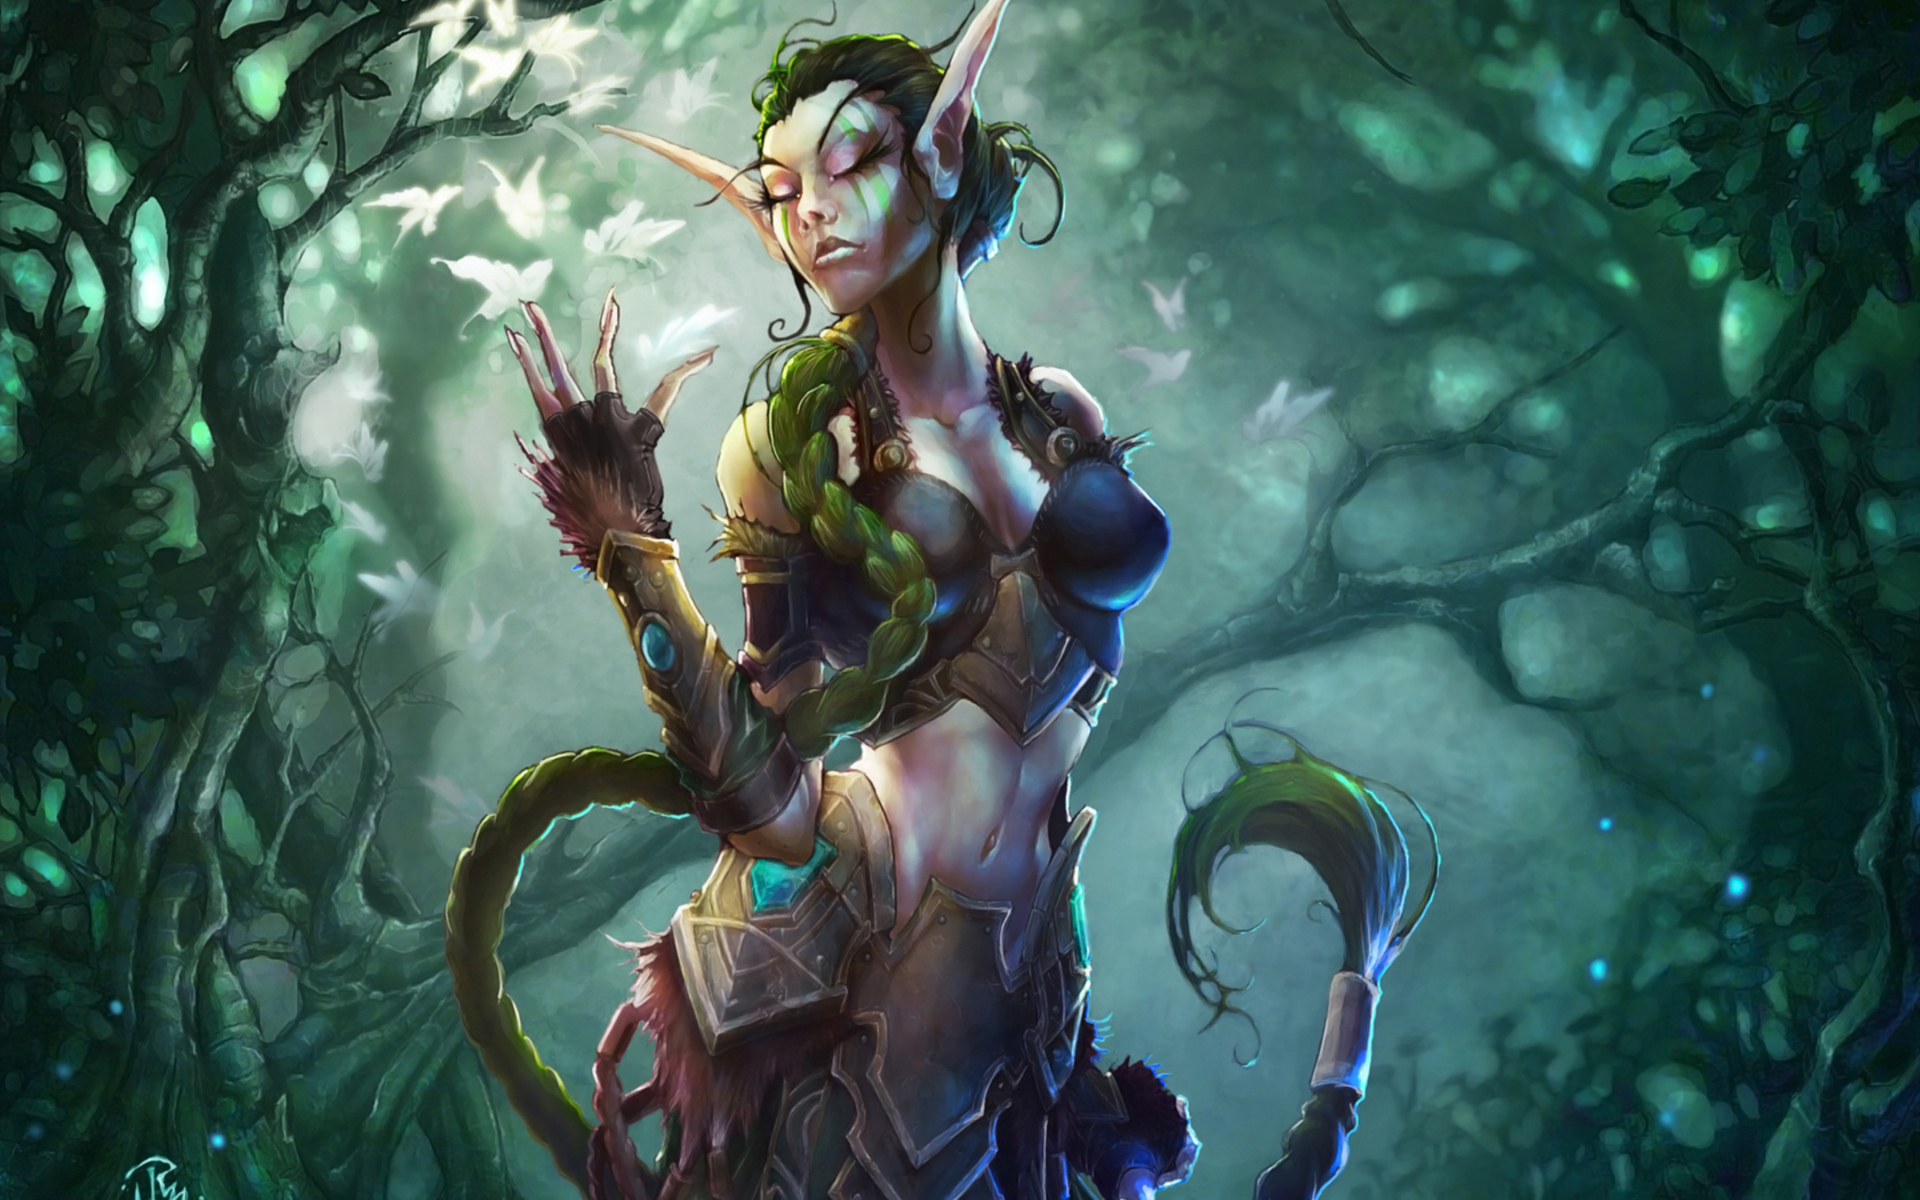 Captured elfin princess forest orc nude photo